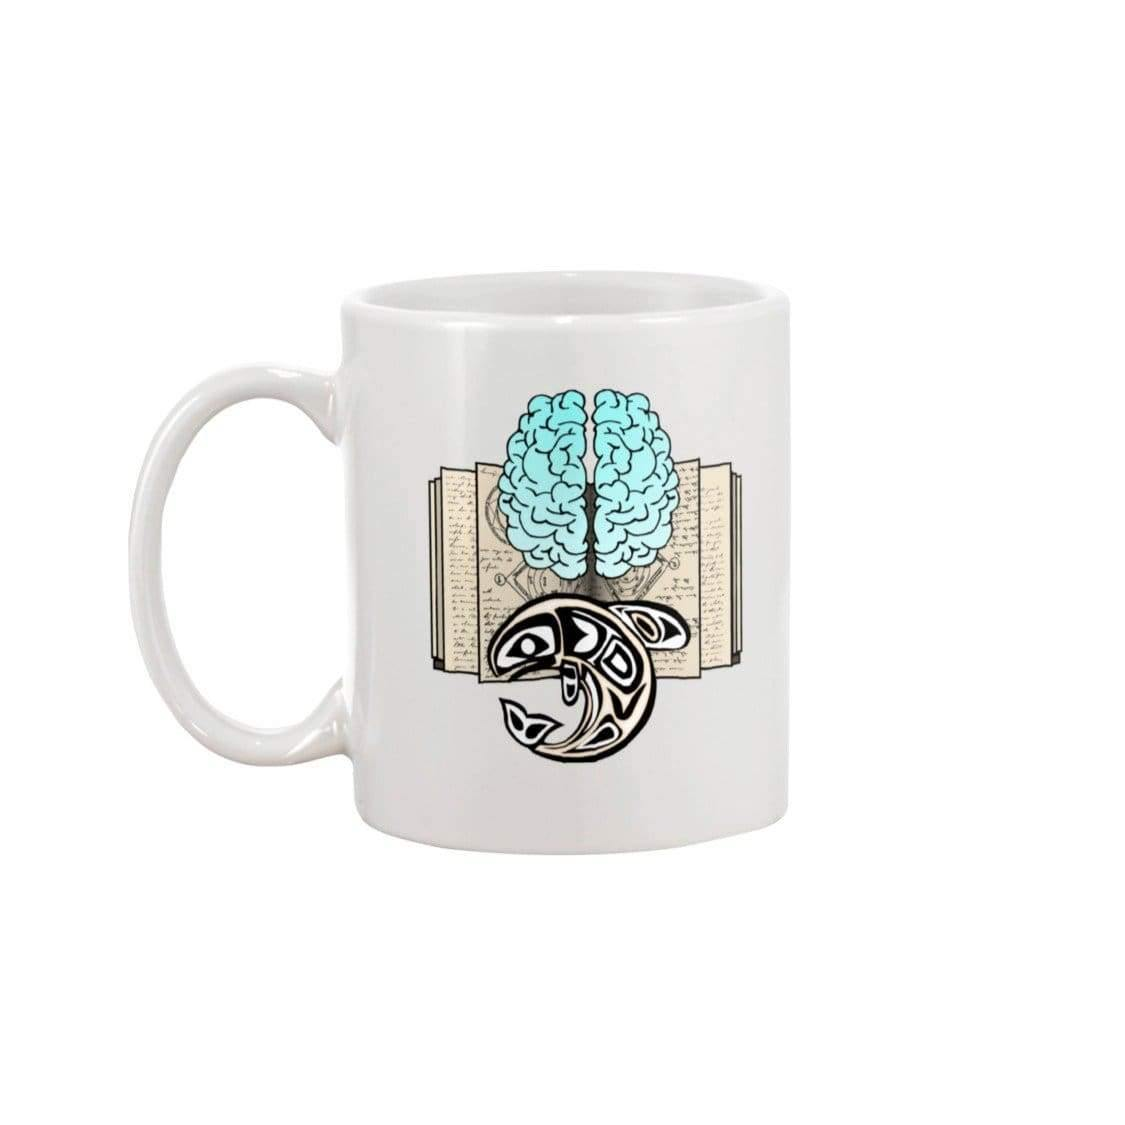 AEDG DUSTRUS 15oz Coffee Mug - Mugs